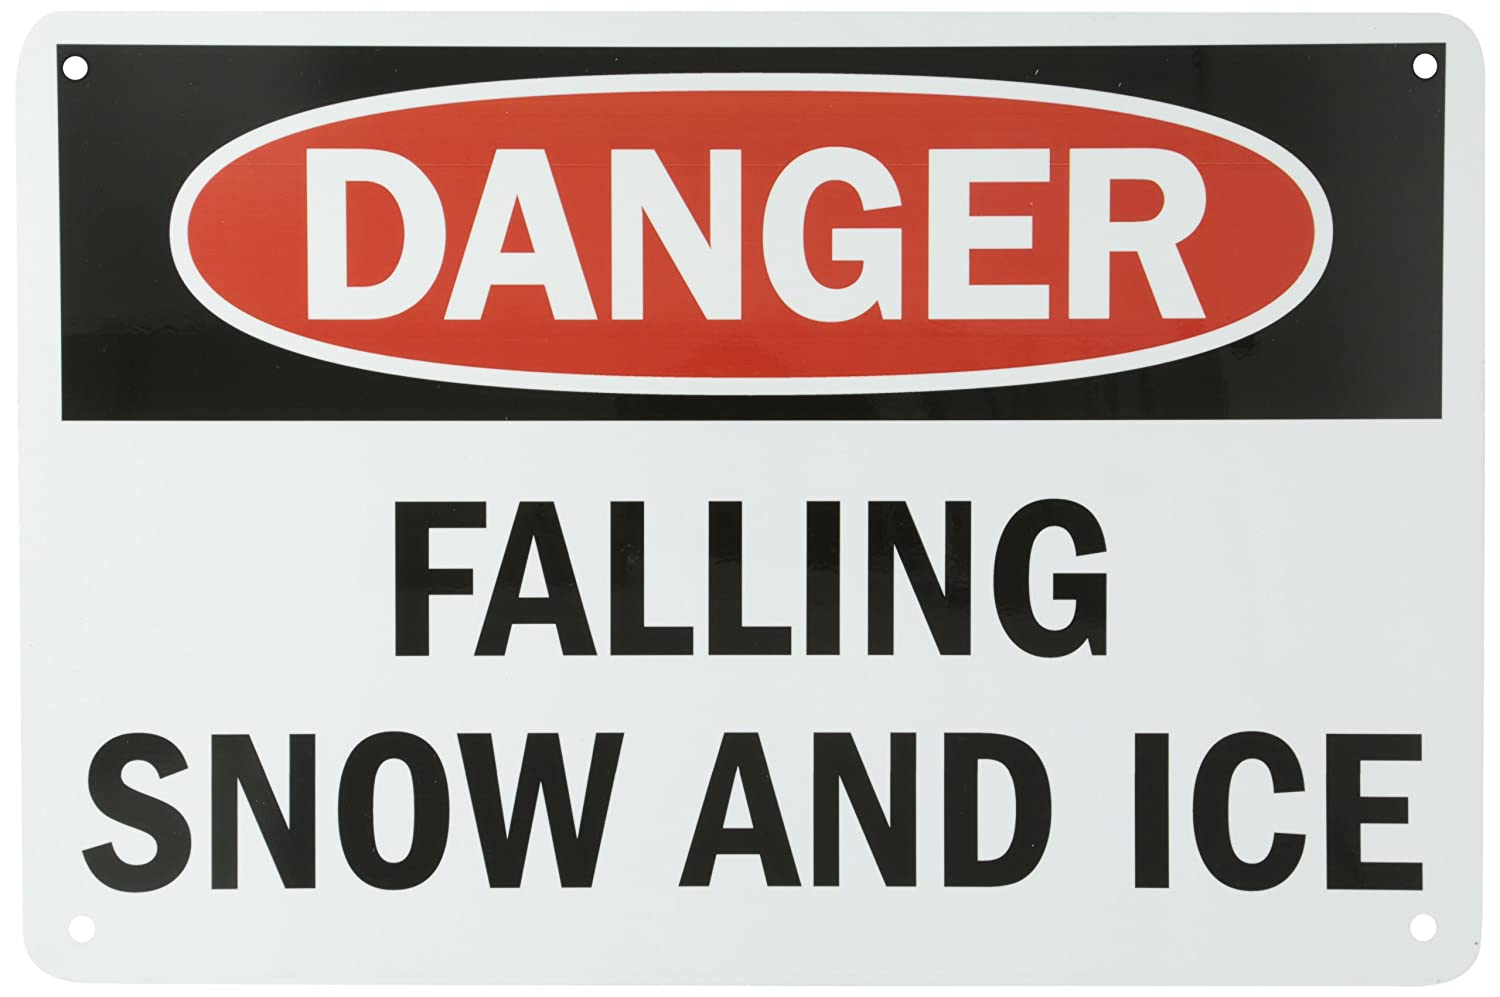 SmartSign Aluminum Sign, Legend'Danger: Falling Snow and Ice', 12' High X 18' Wide, Black/Red on White LegendDanger: Falling Snow and Ice 12 High X 18 Wide Lyle Signs S-8189-AL-12x18